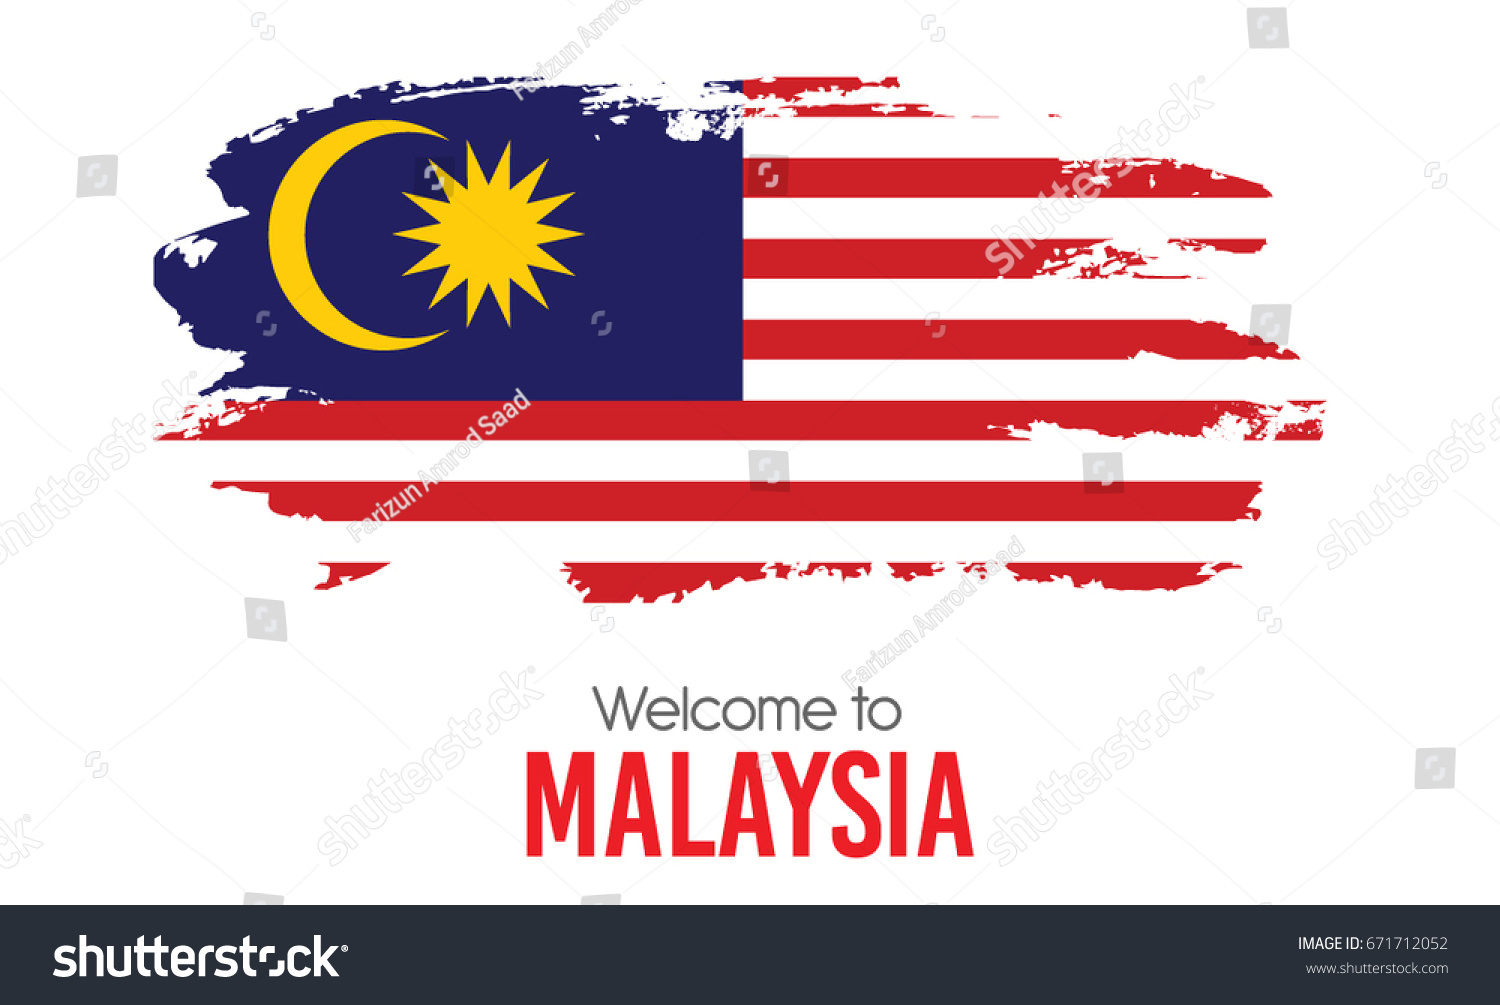 Vector illustration malaysia flag text welcome stock vector vector illustration of malaysia flag and text welcome to malaysia buycottarizona Gallery